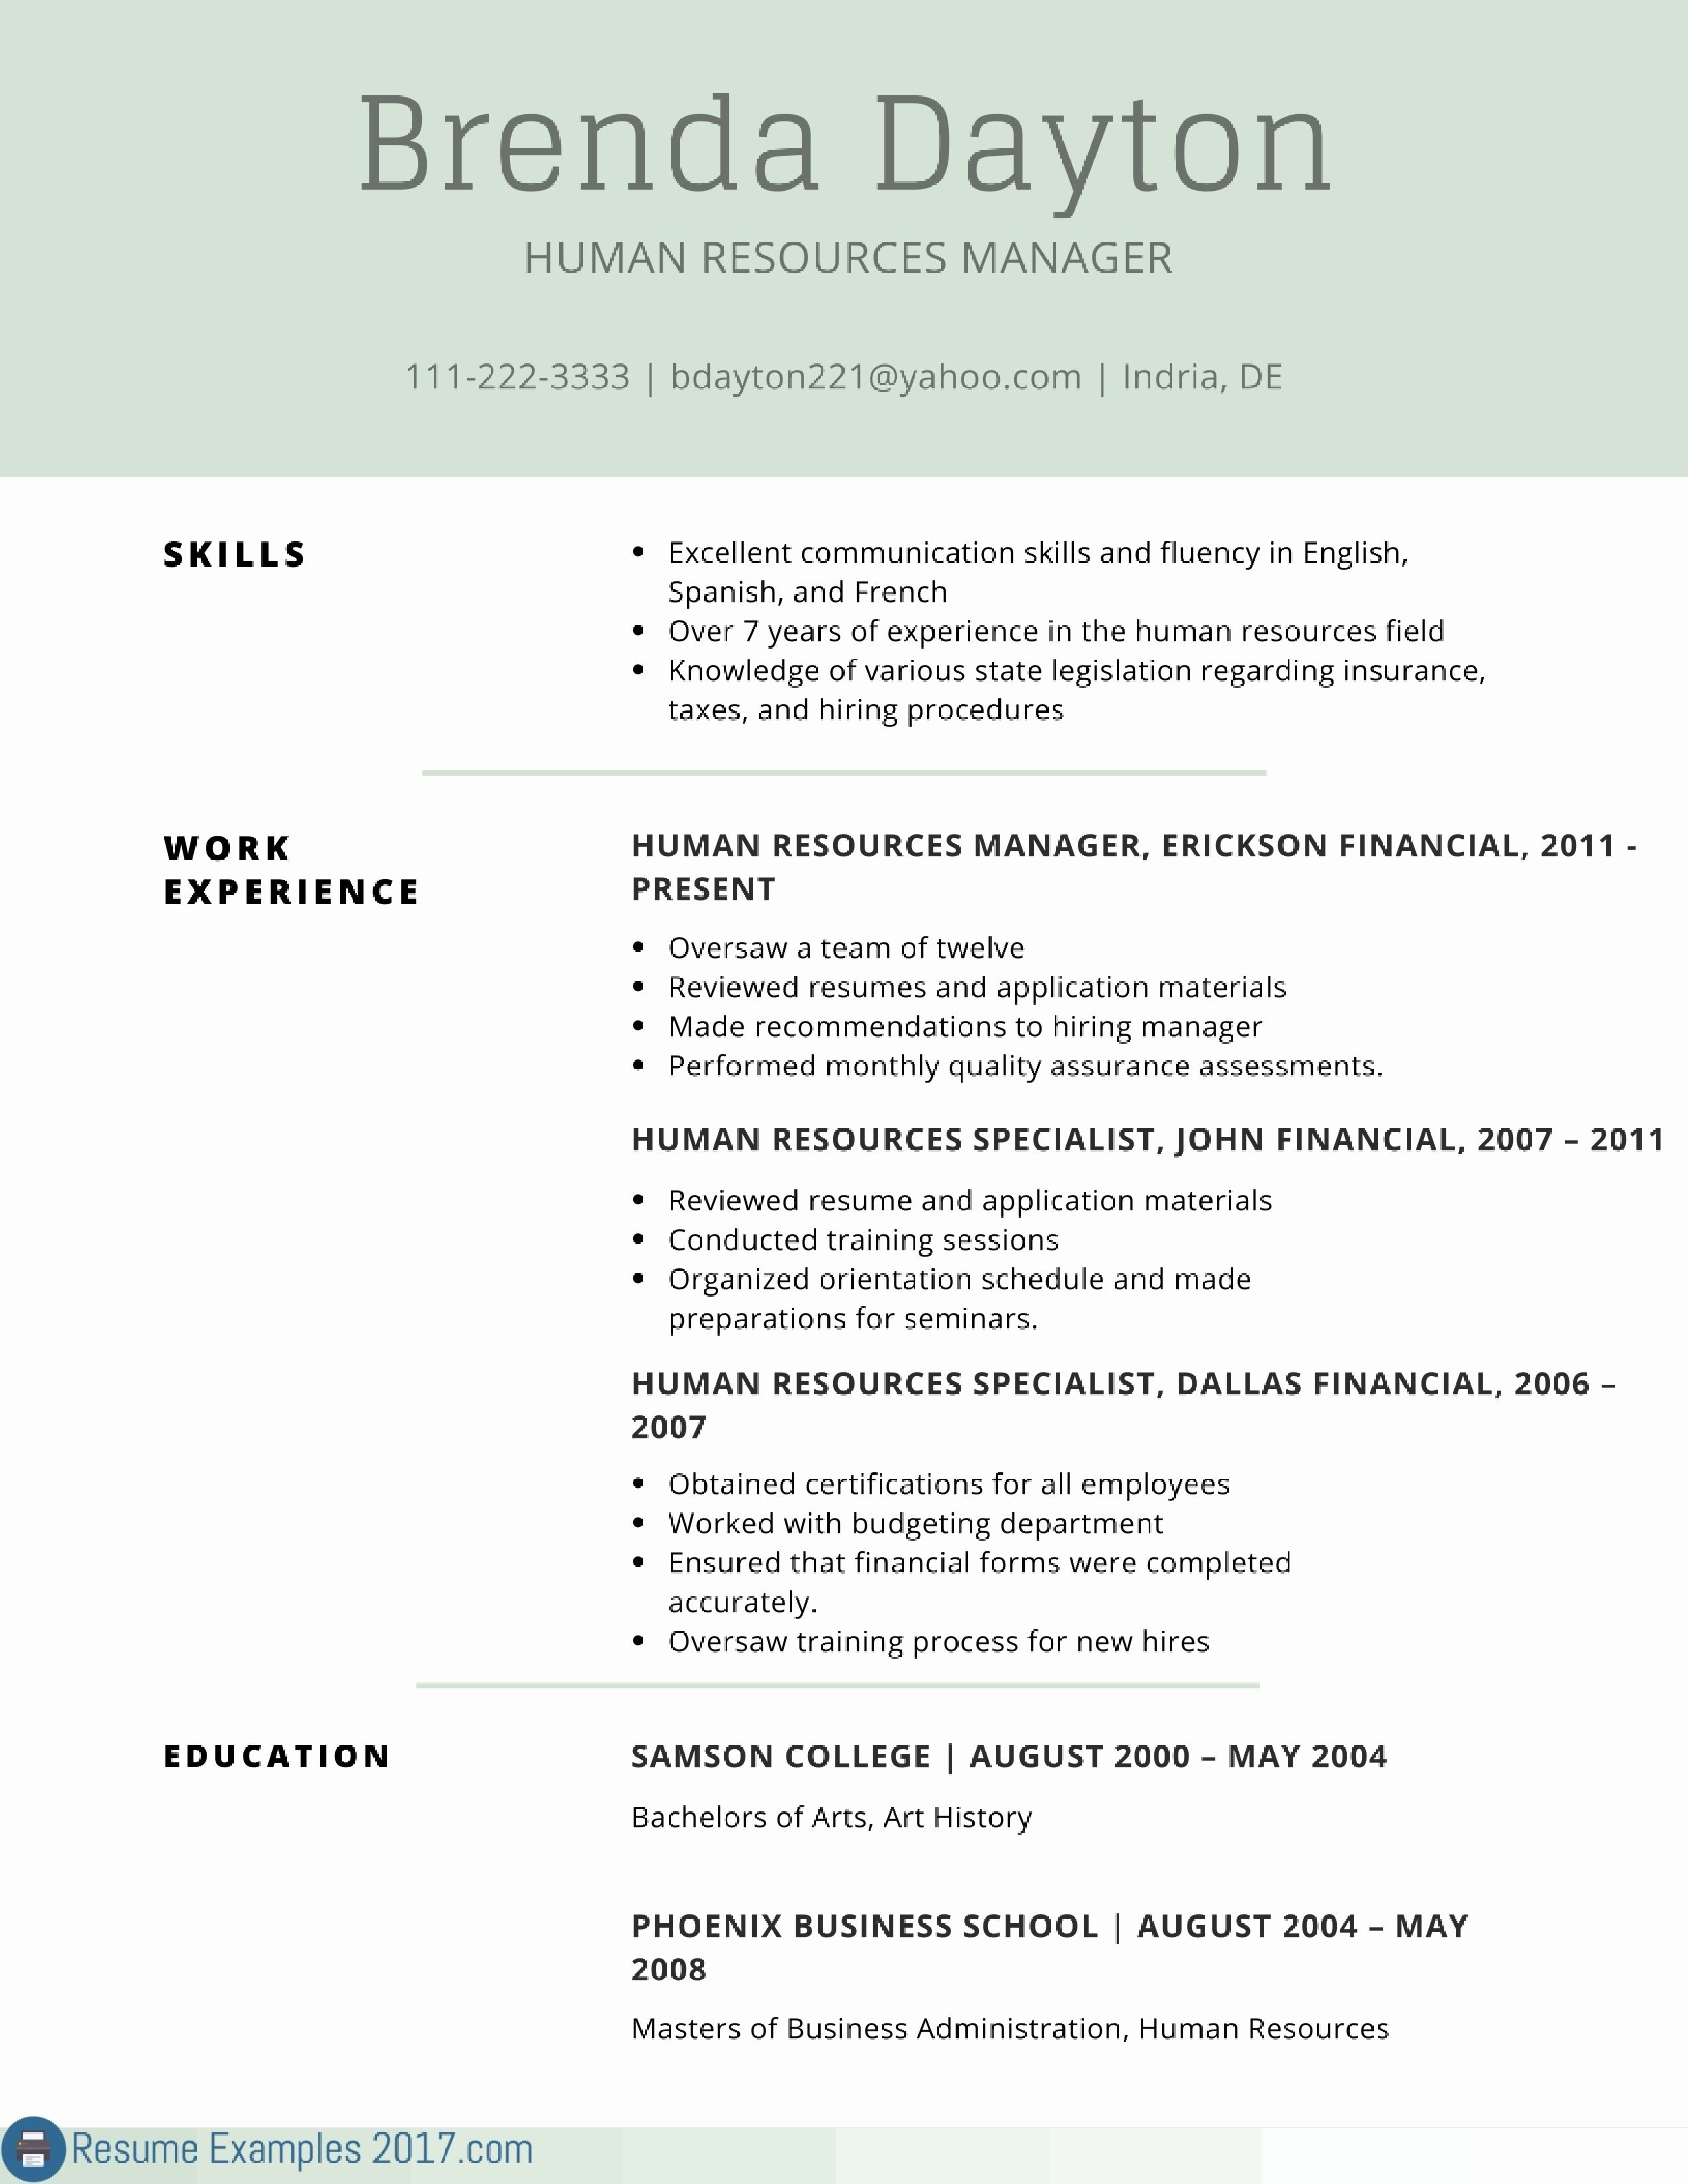 human resources resume template example-Fresh New Resume Sample Best Resume Cover Luxury formatted Resume 0d It Professional Resume Fresh · · Human Resources 10-b